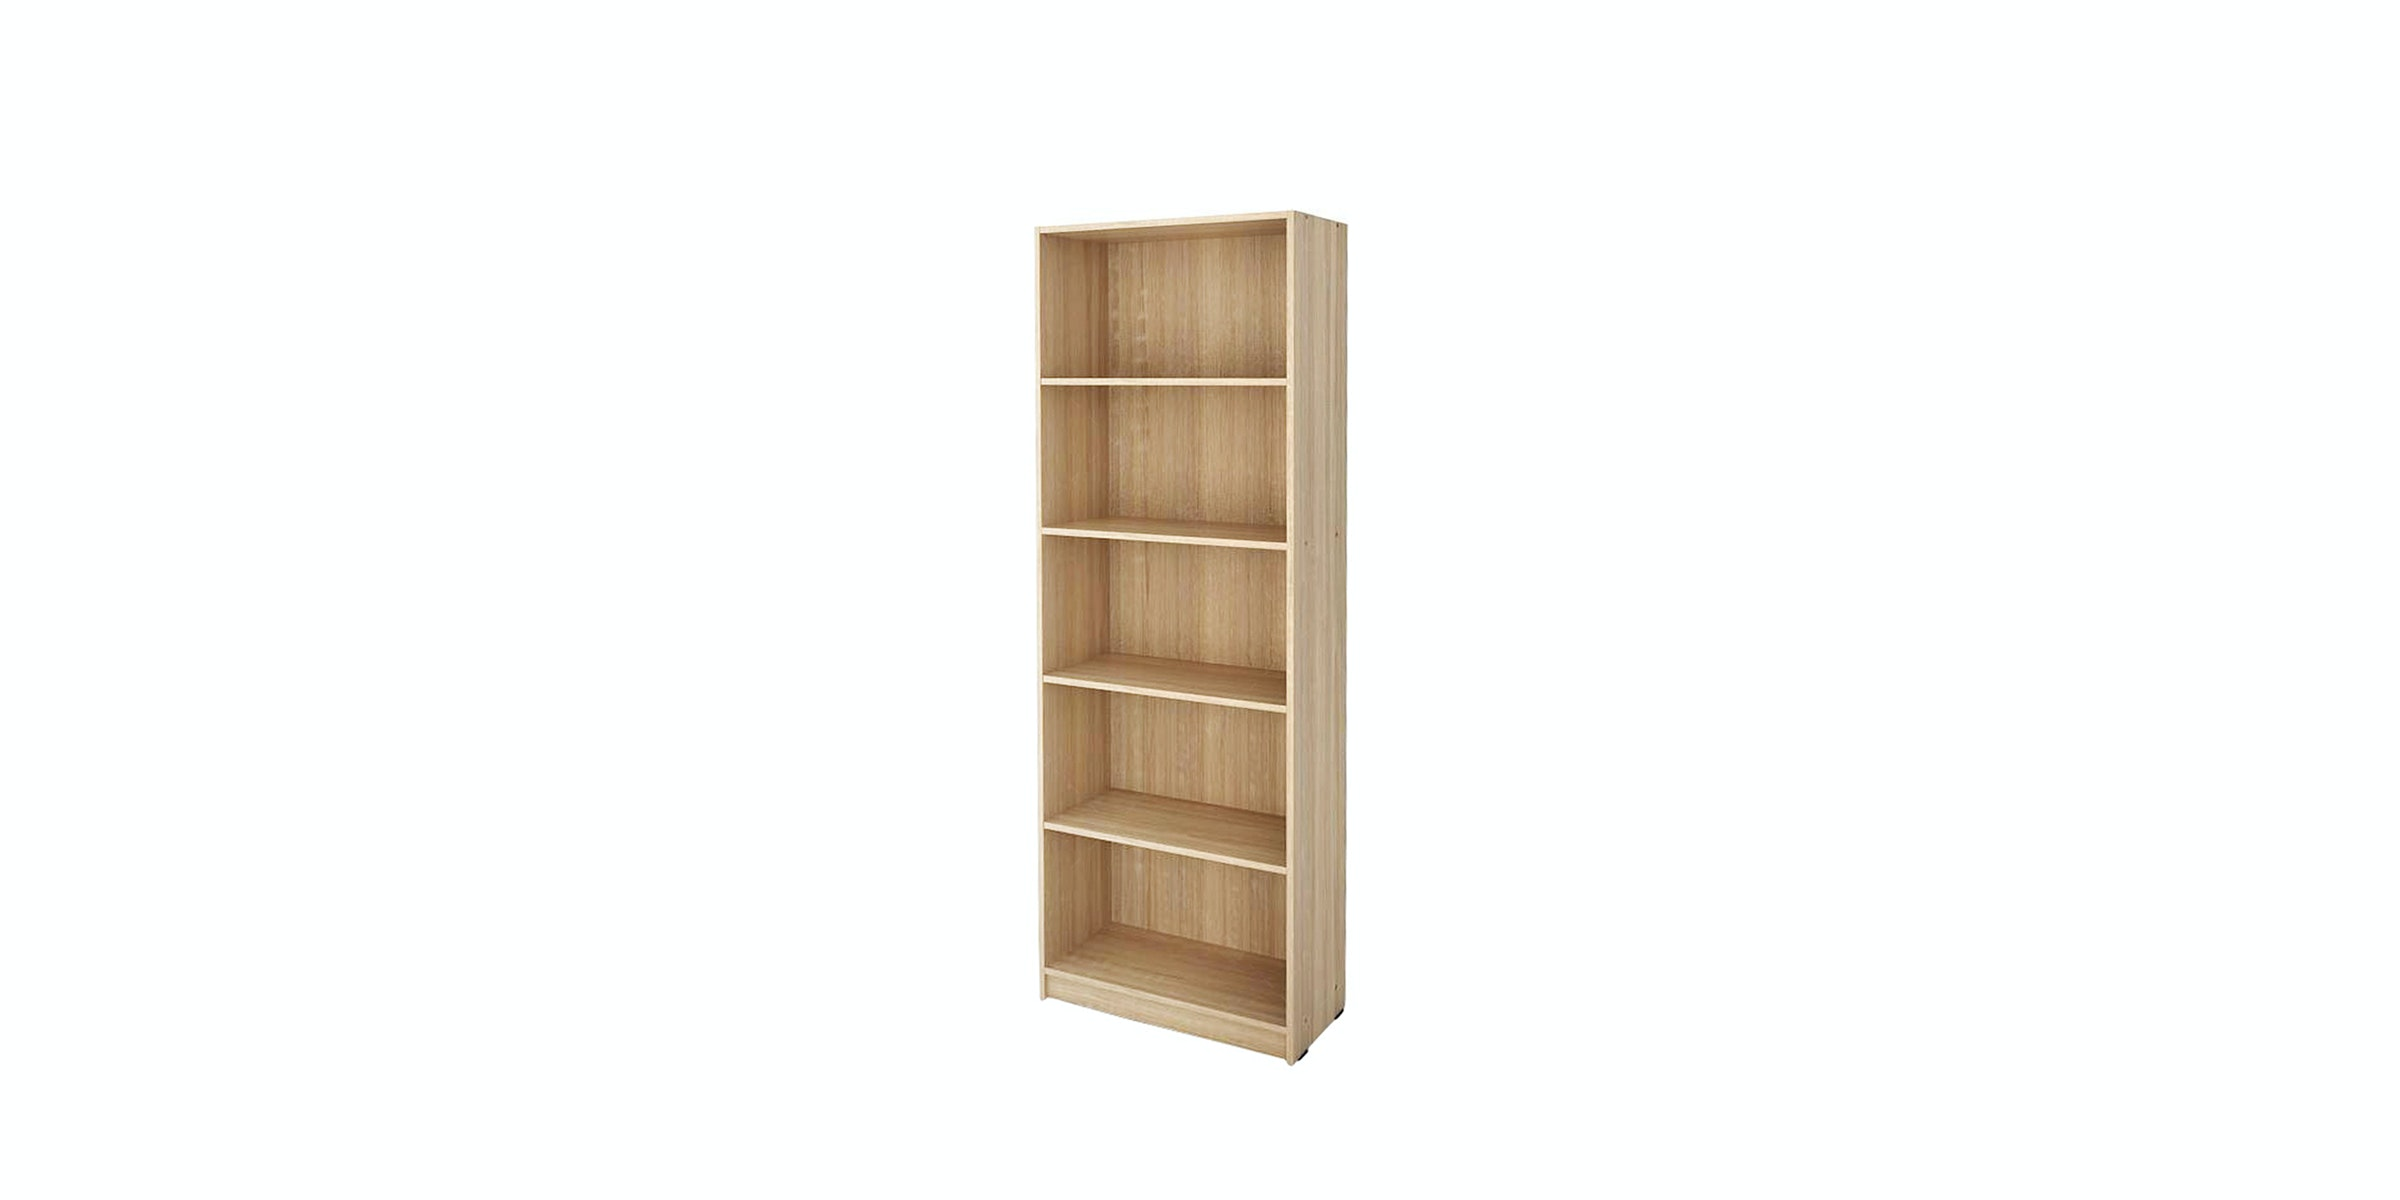 JYSK Bookcase 5 Shelves GISLINGE - Rak 5 Susun Oak